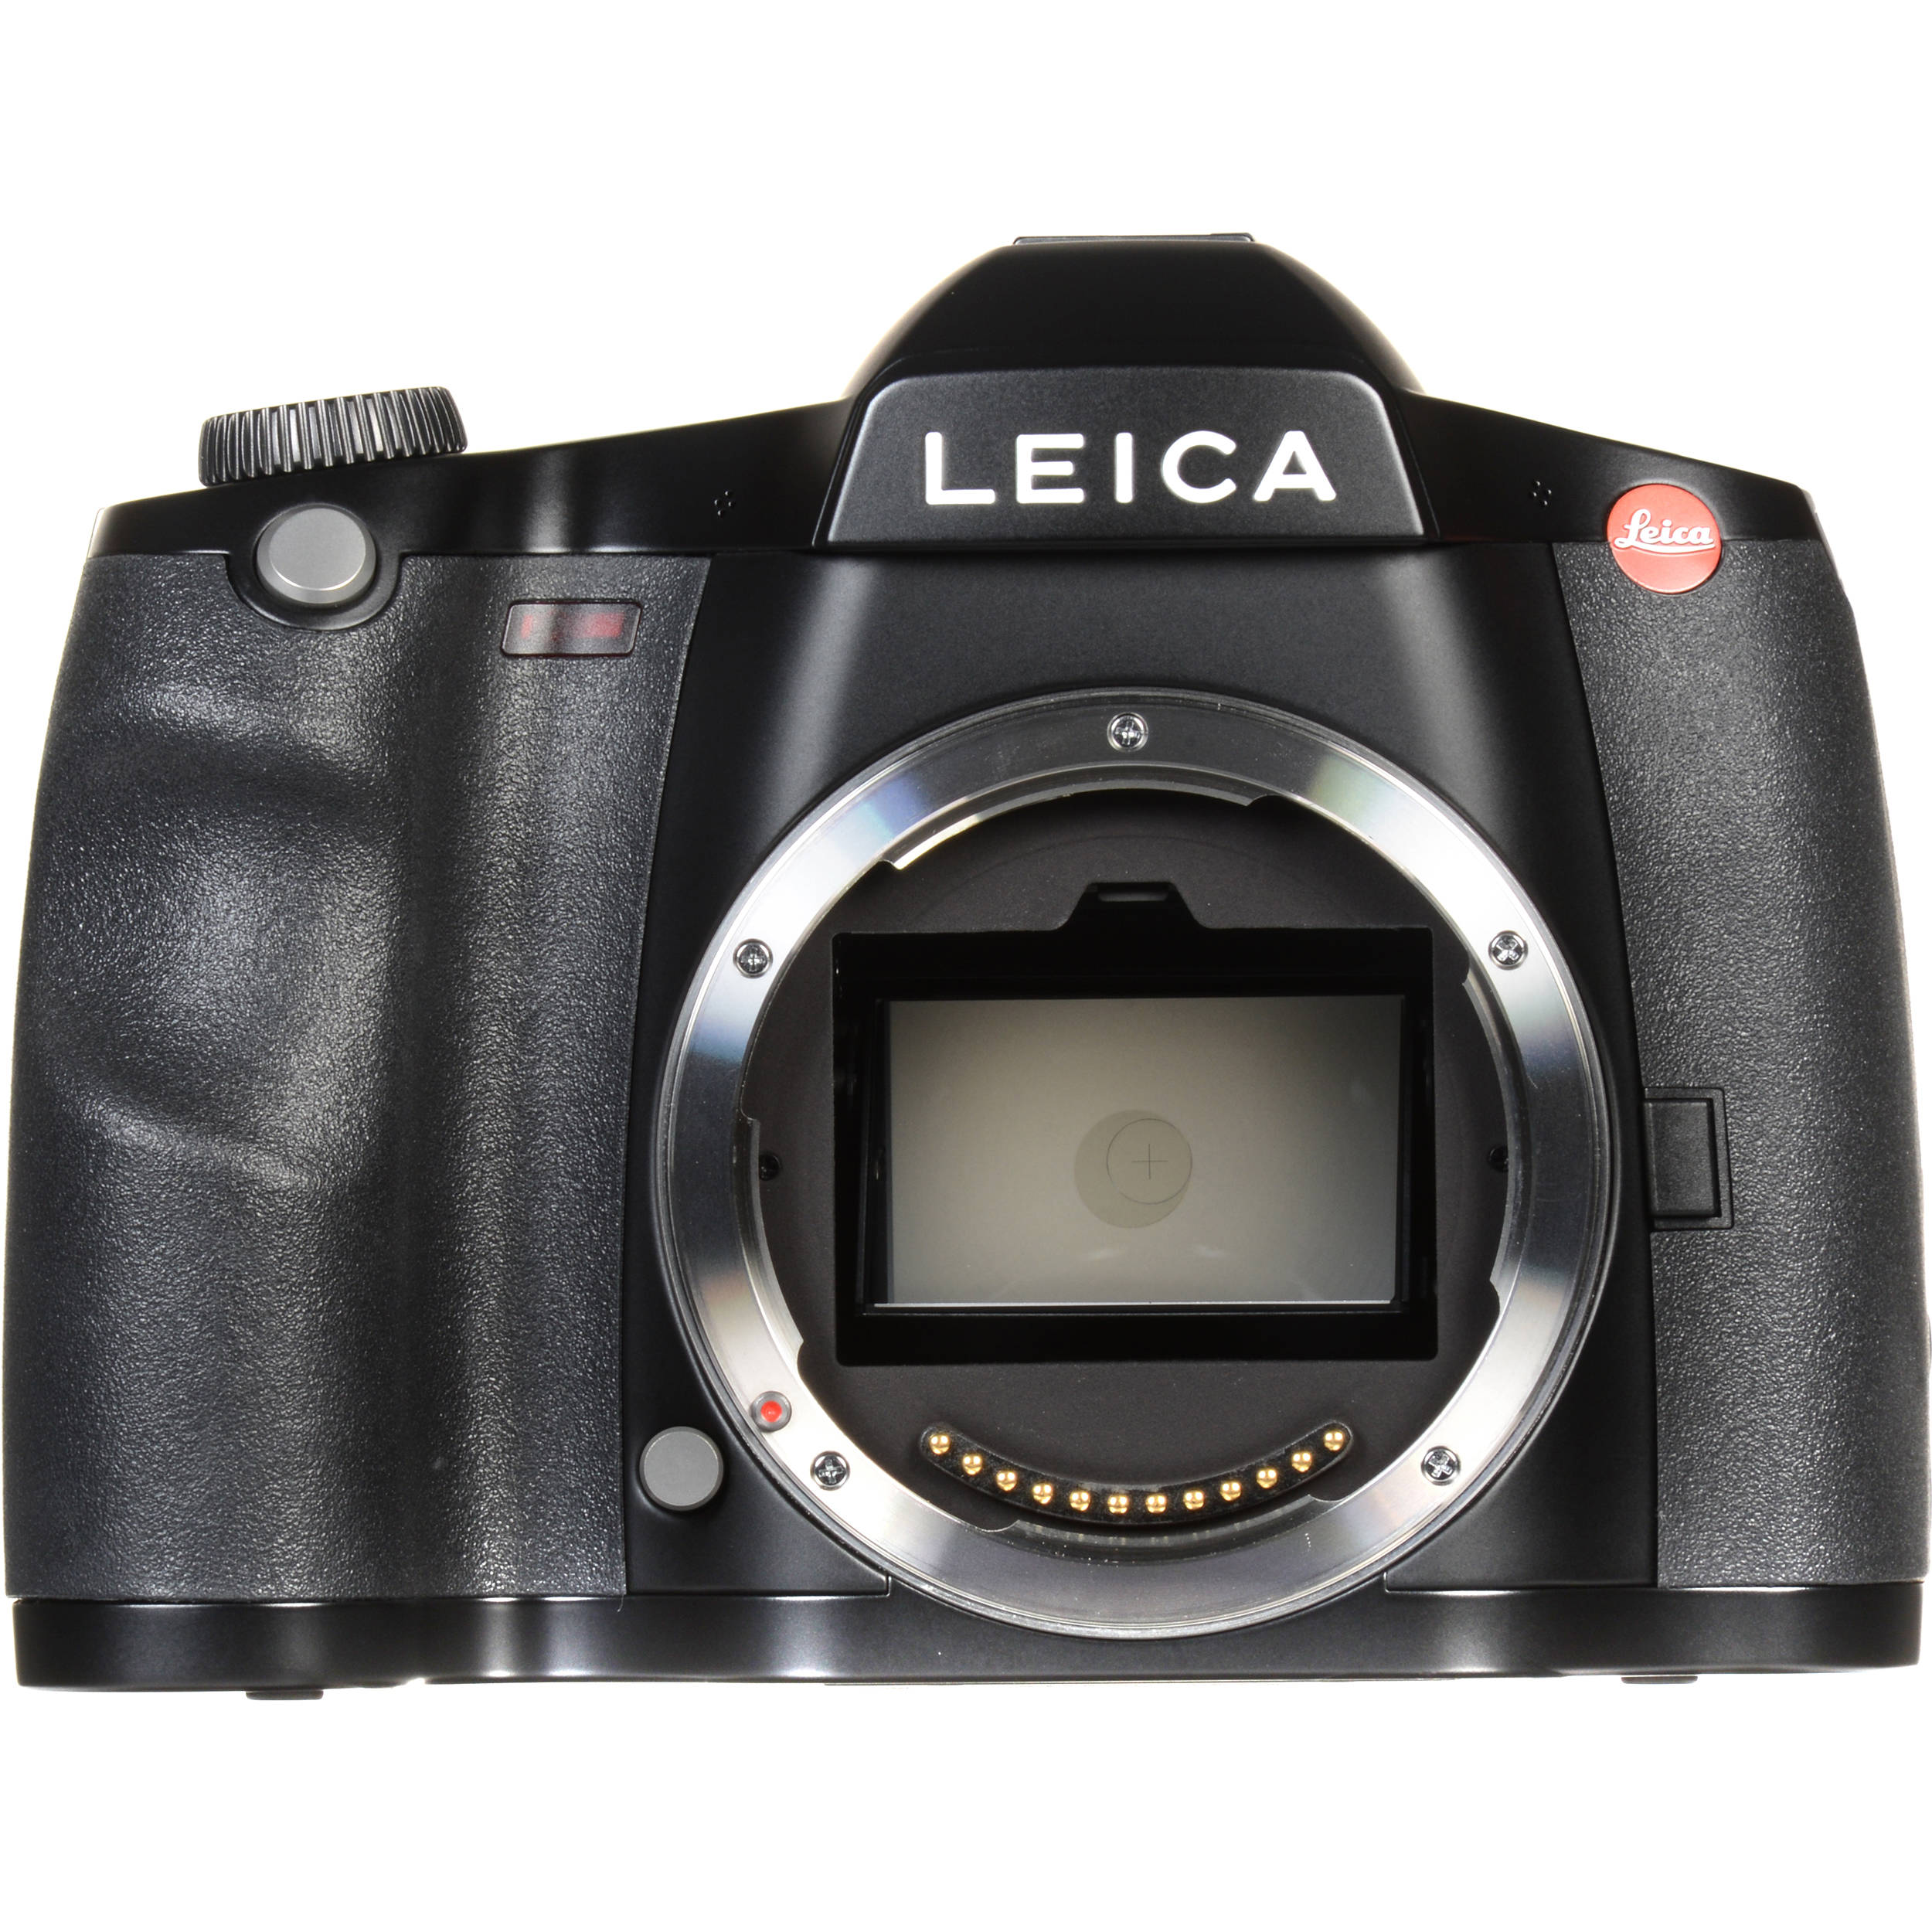 Leica S Camera Drivers for Windows Download